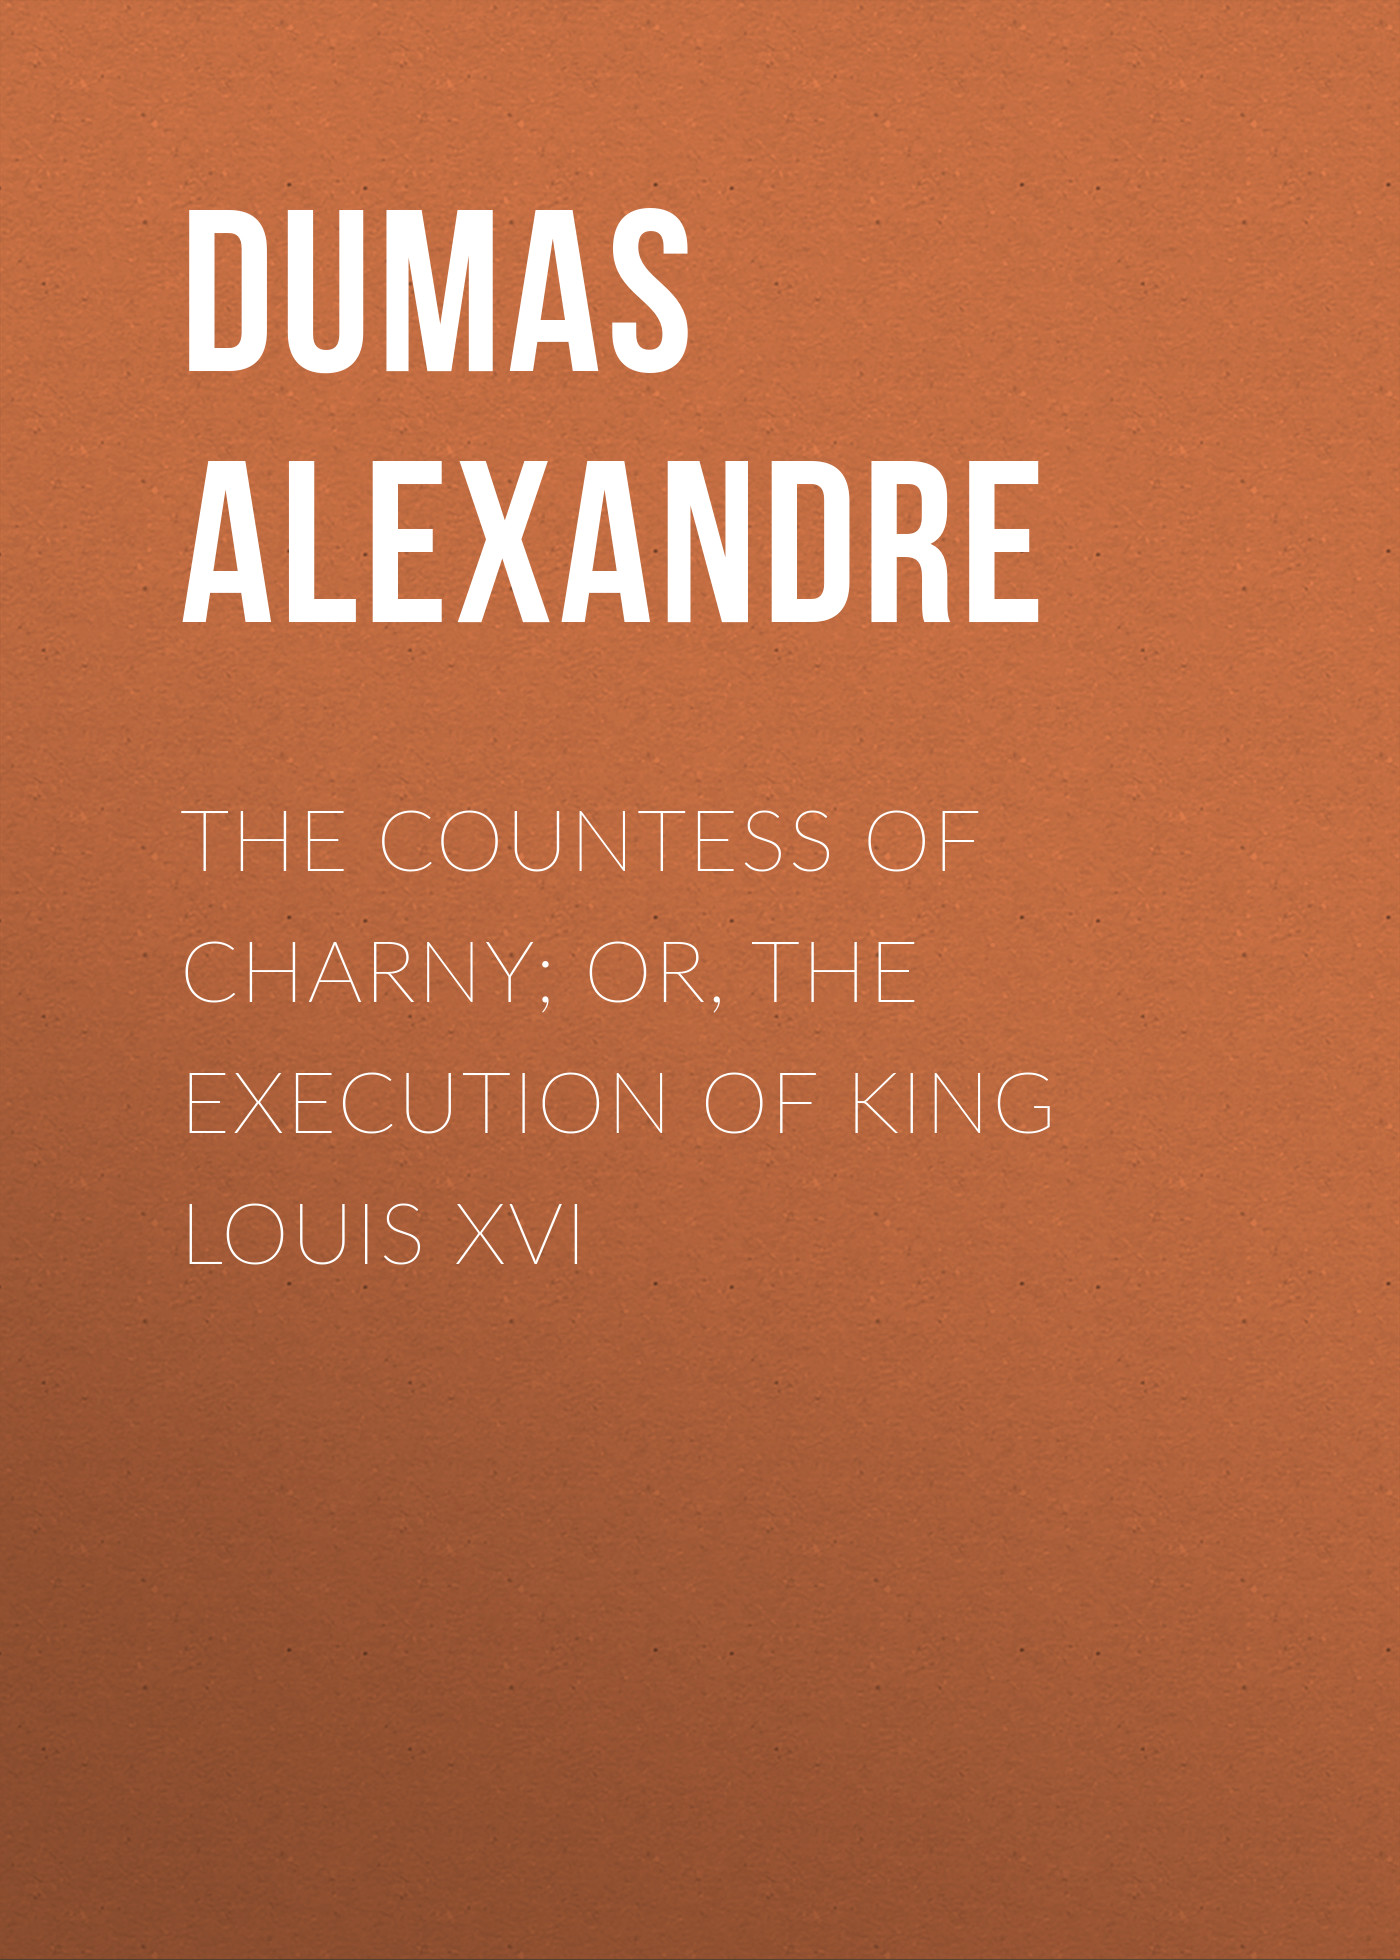 Александр Дюма The Countess of Charny; or, The Execution of King Louis XVI александр дюма the war of women volume 2